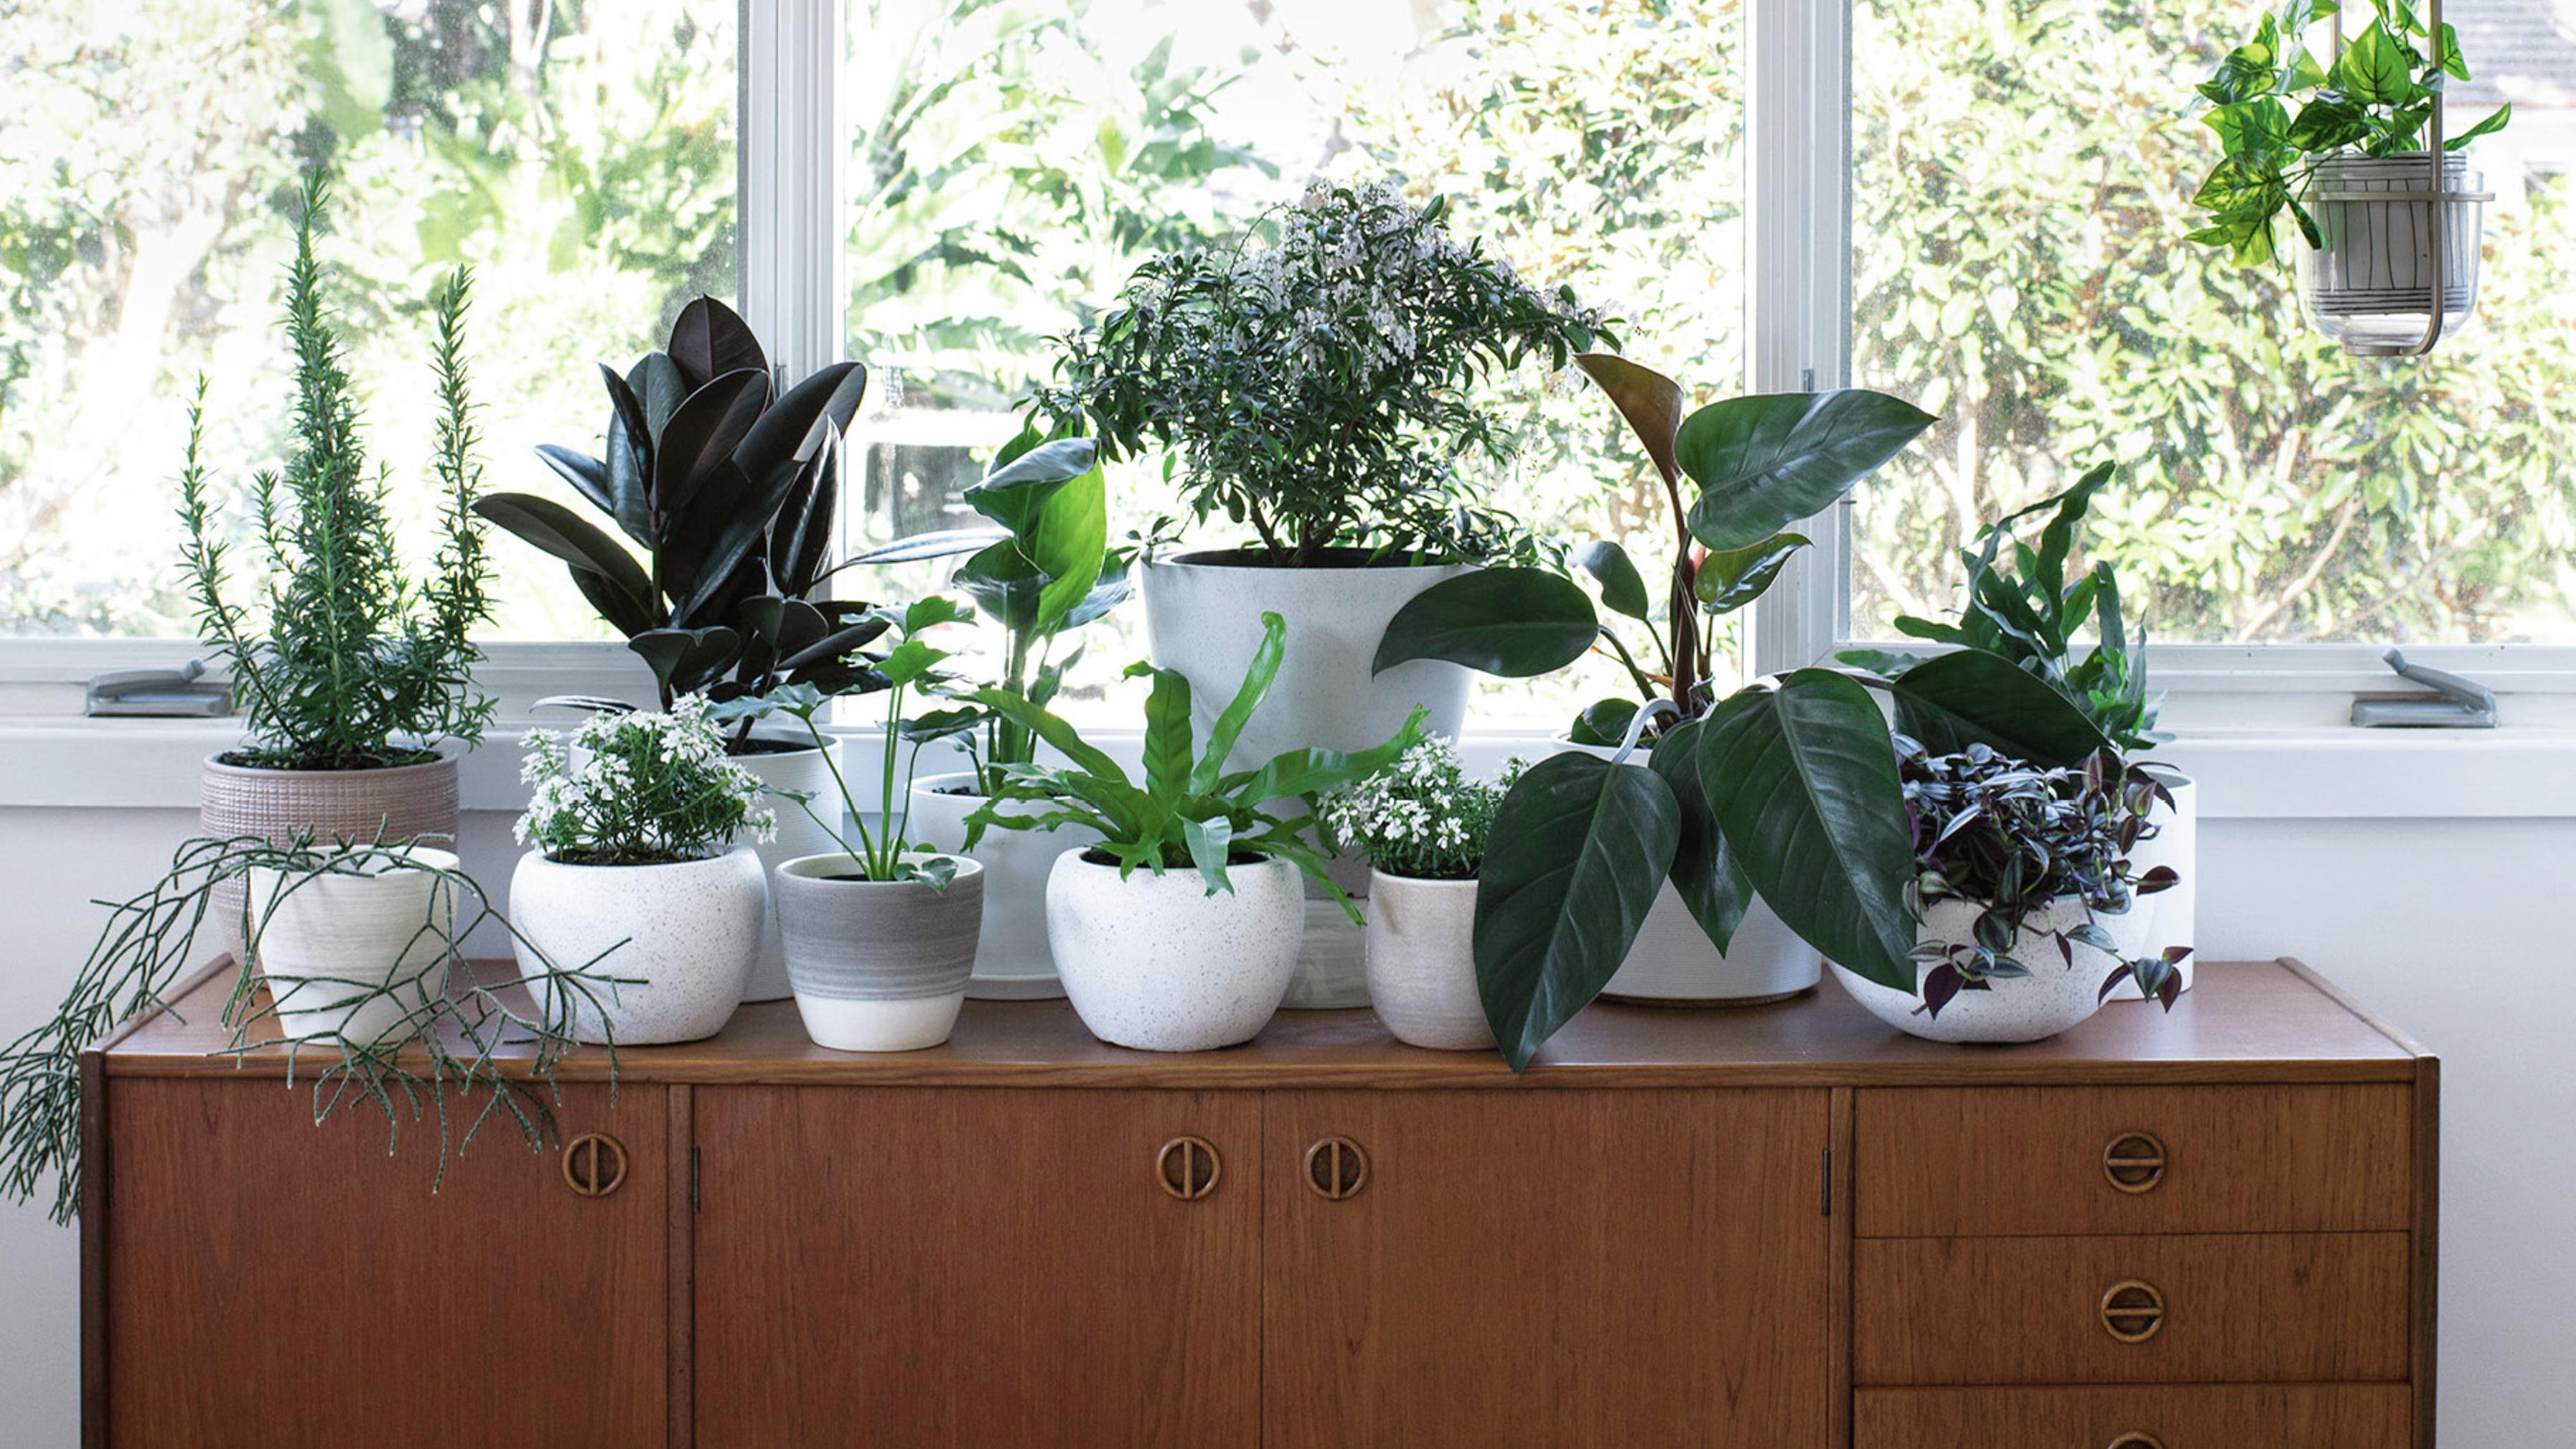 Potted plants sitting on cabinet.